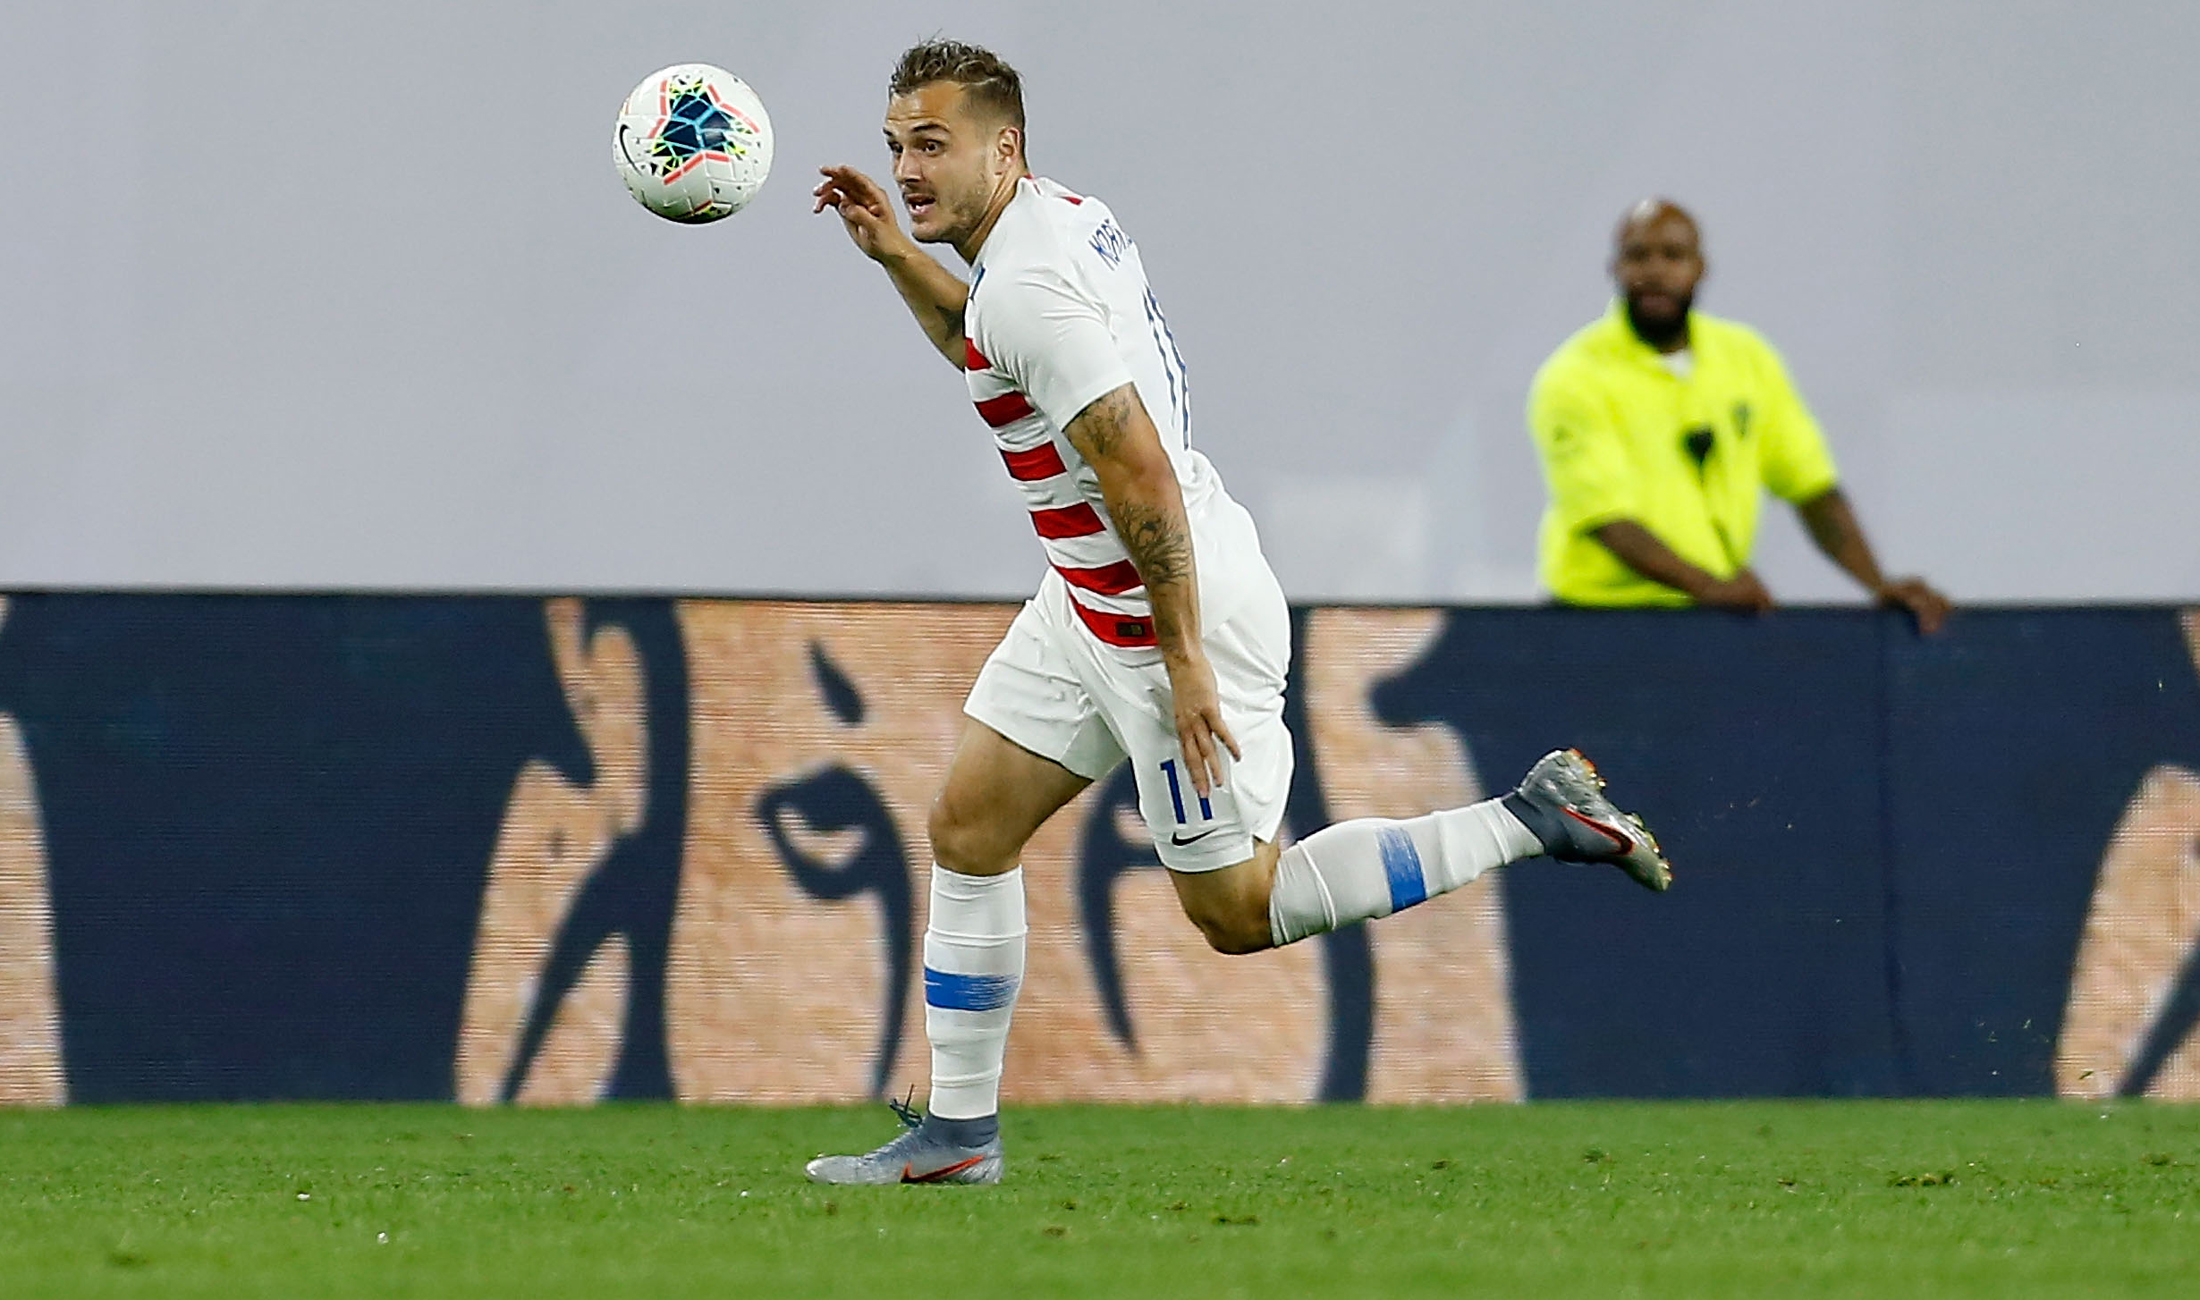 Jordan Morris and Josh Sargent scored braces in the United States' win over Cuba.